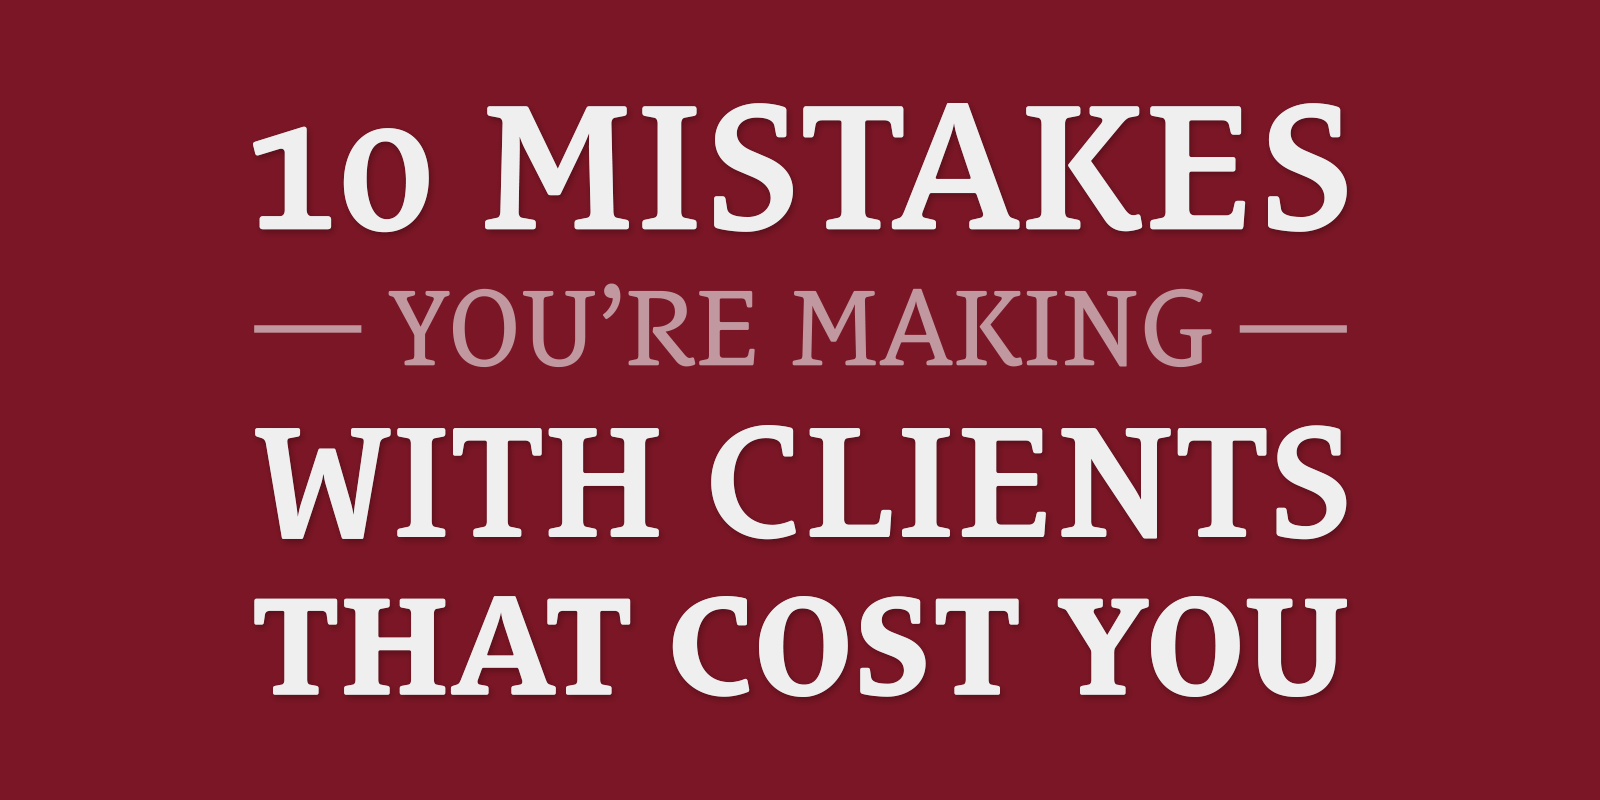 10 Mistakes You're Making With Clients That Cost You